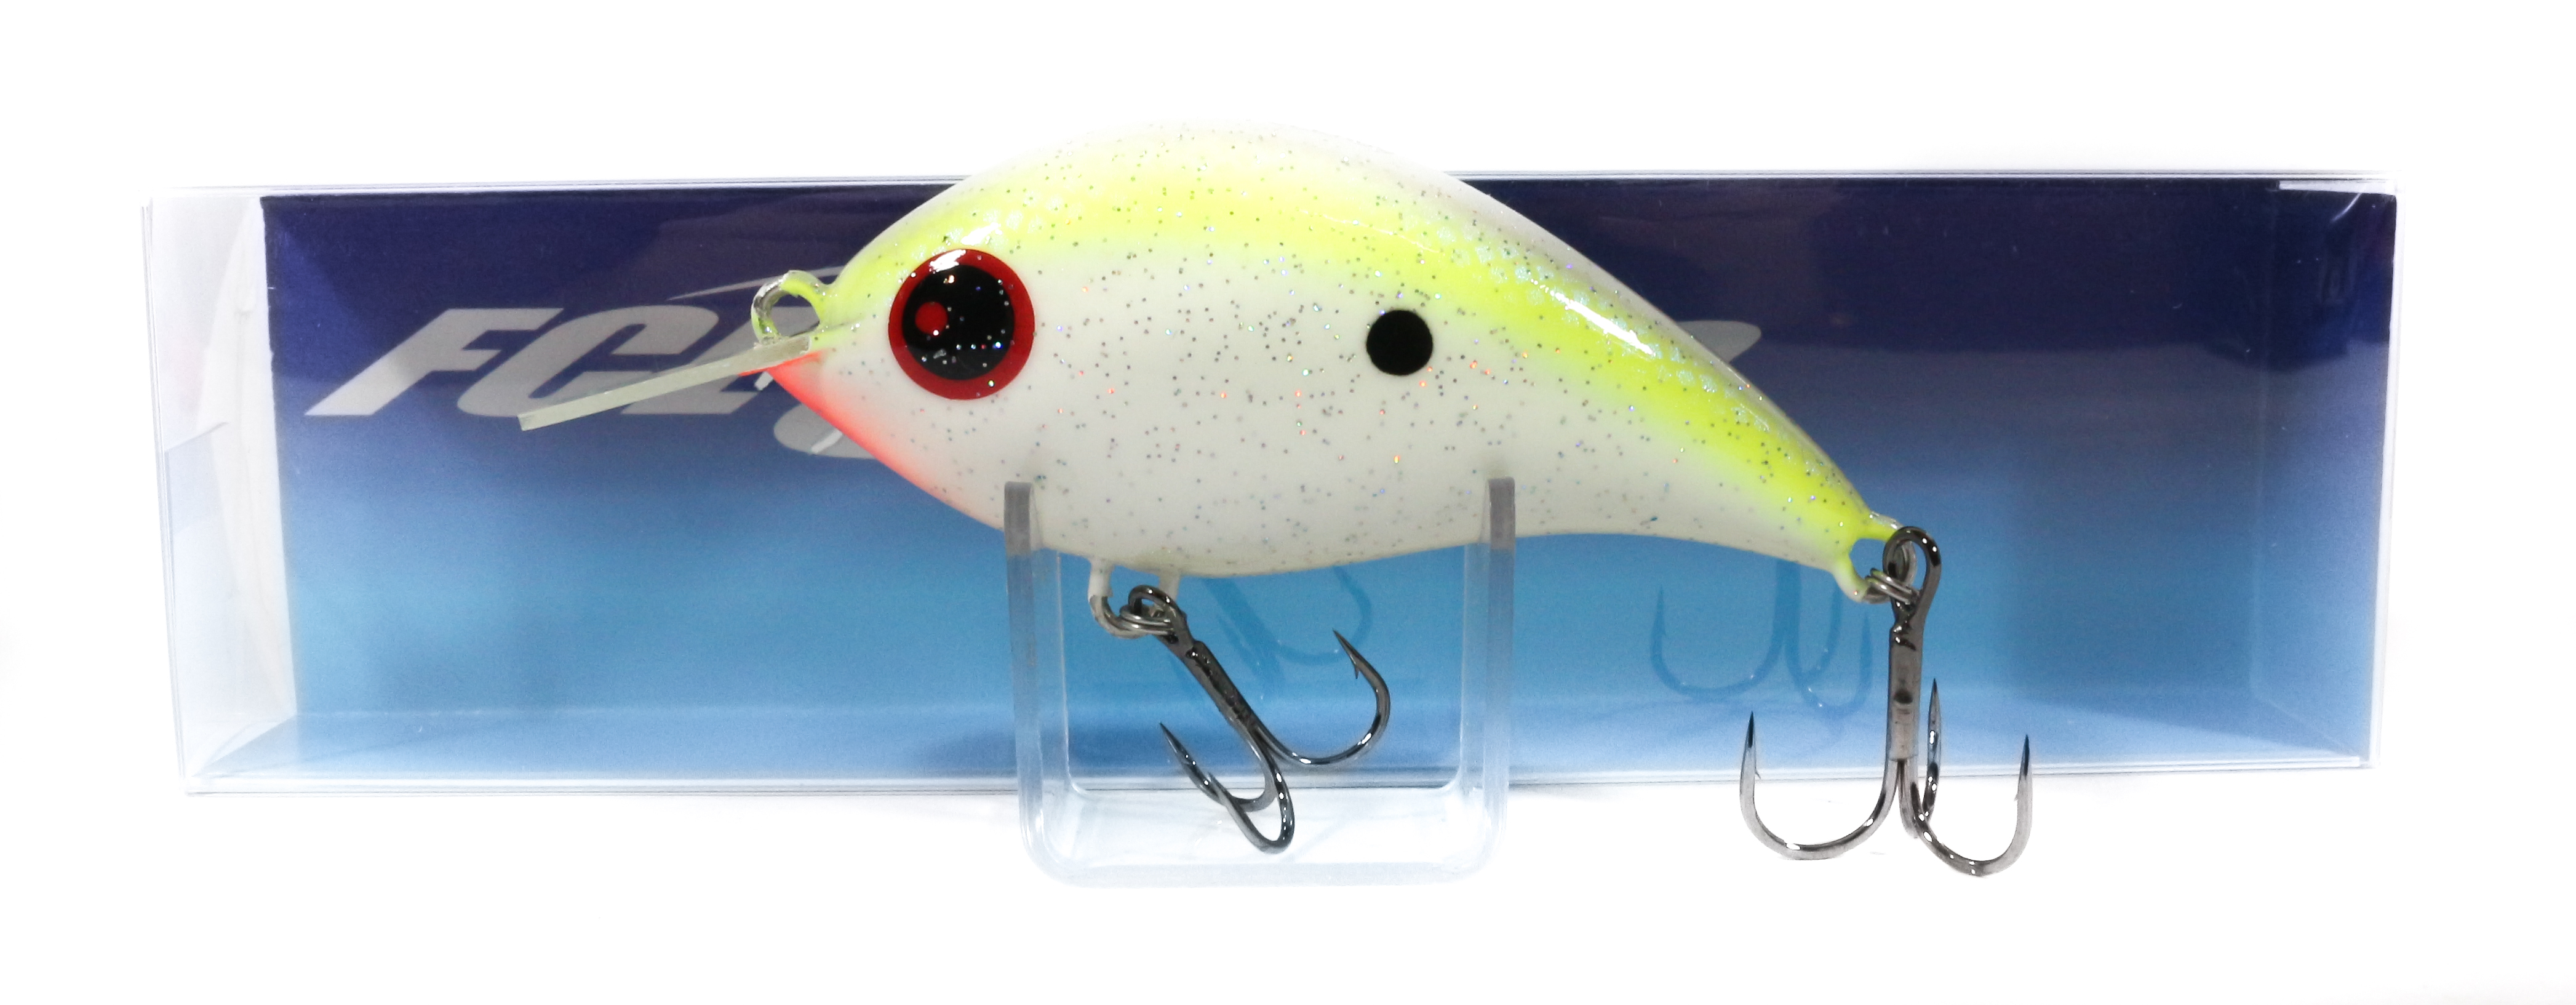 FCL Labo Lure TKC 70 Floating Lure SE (3962)